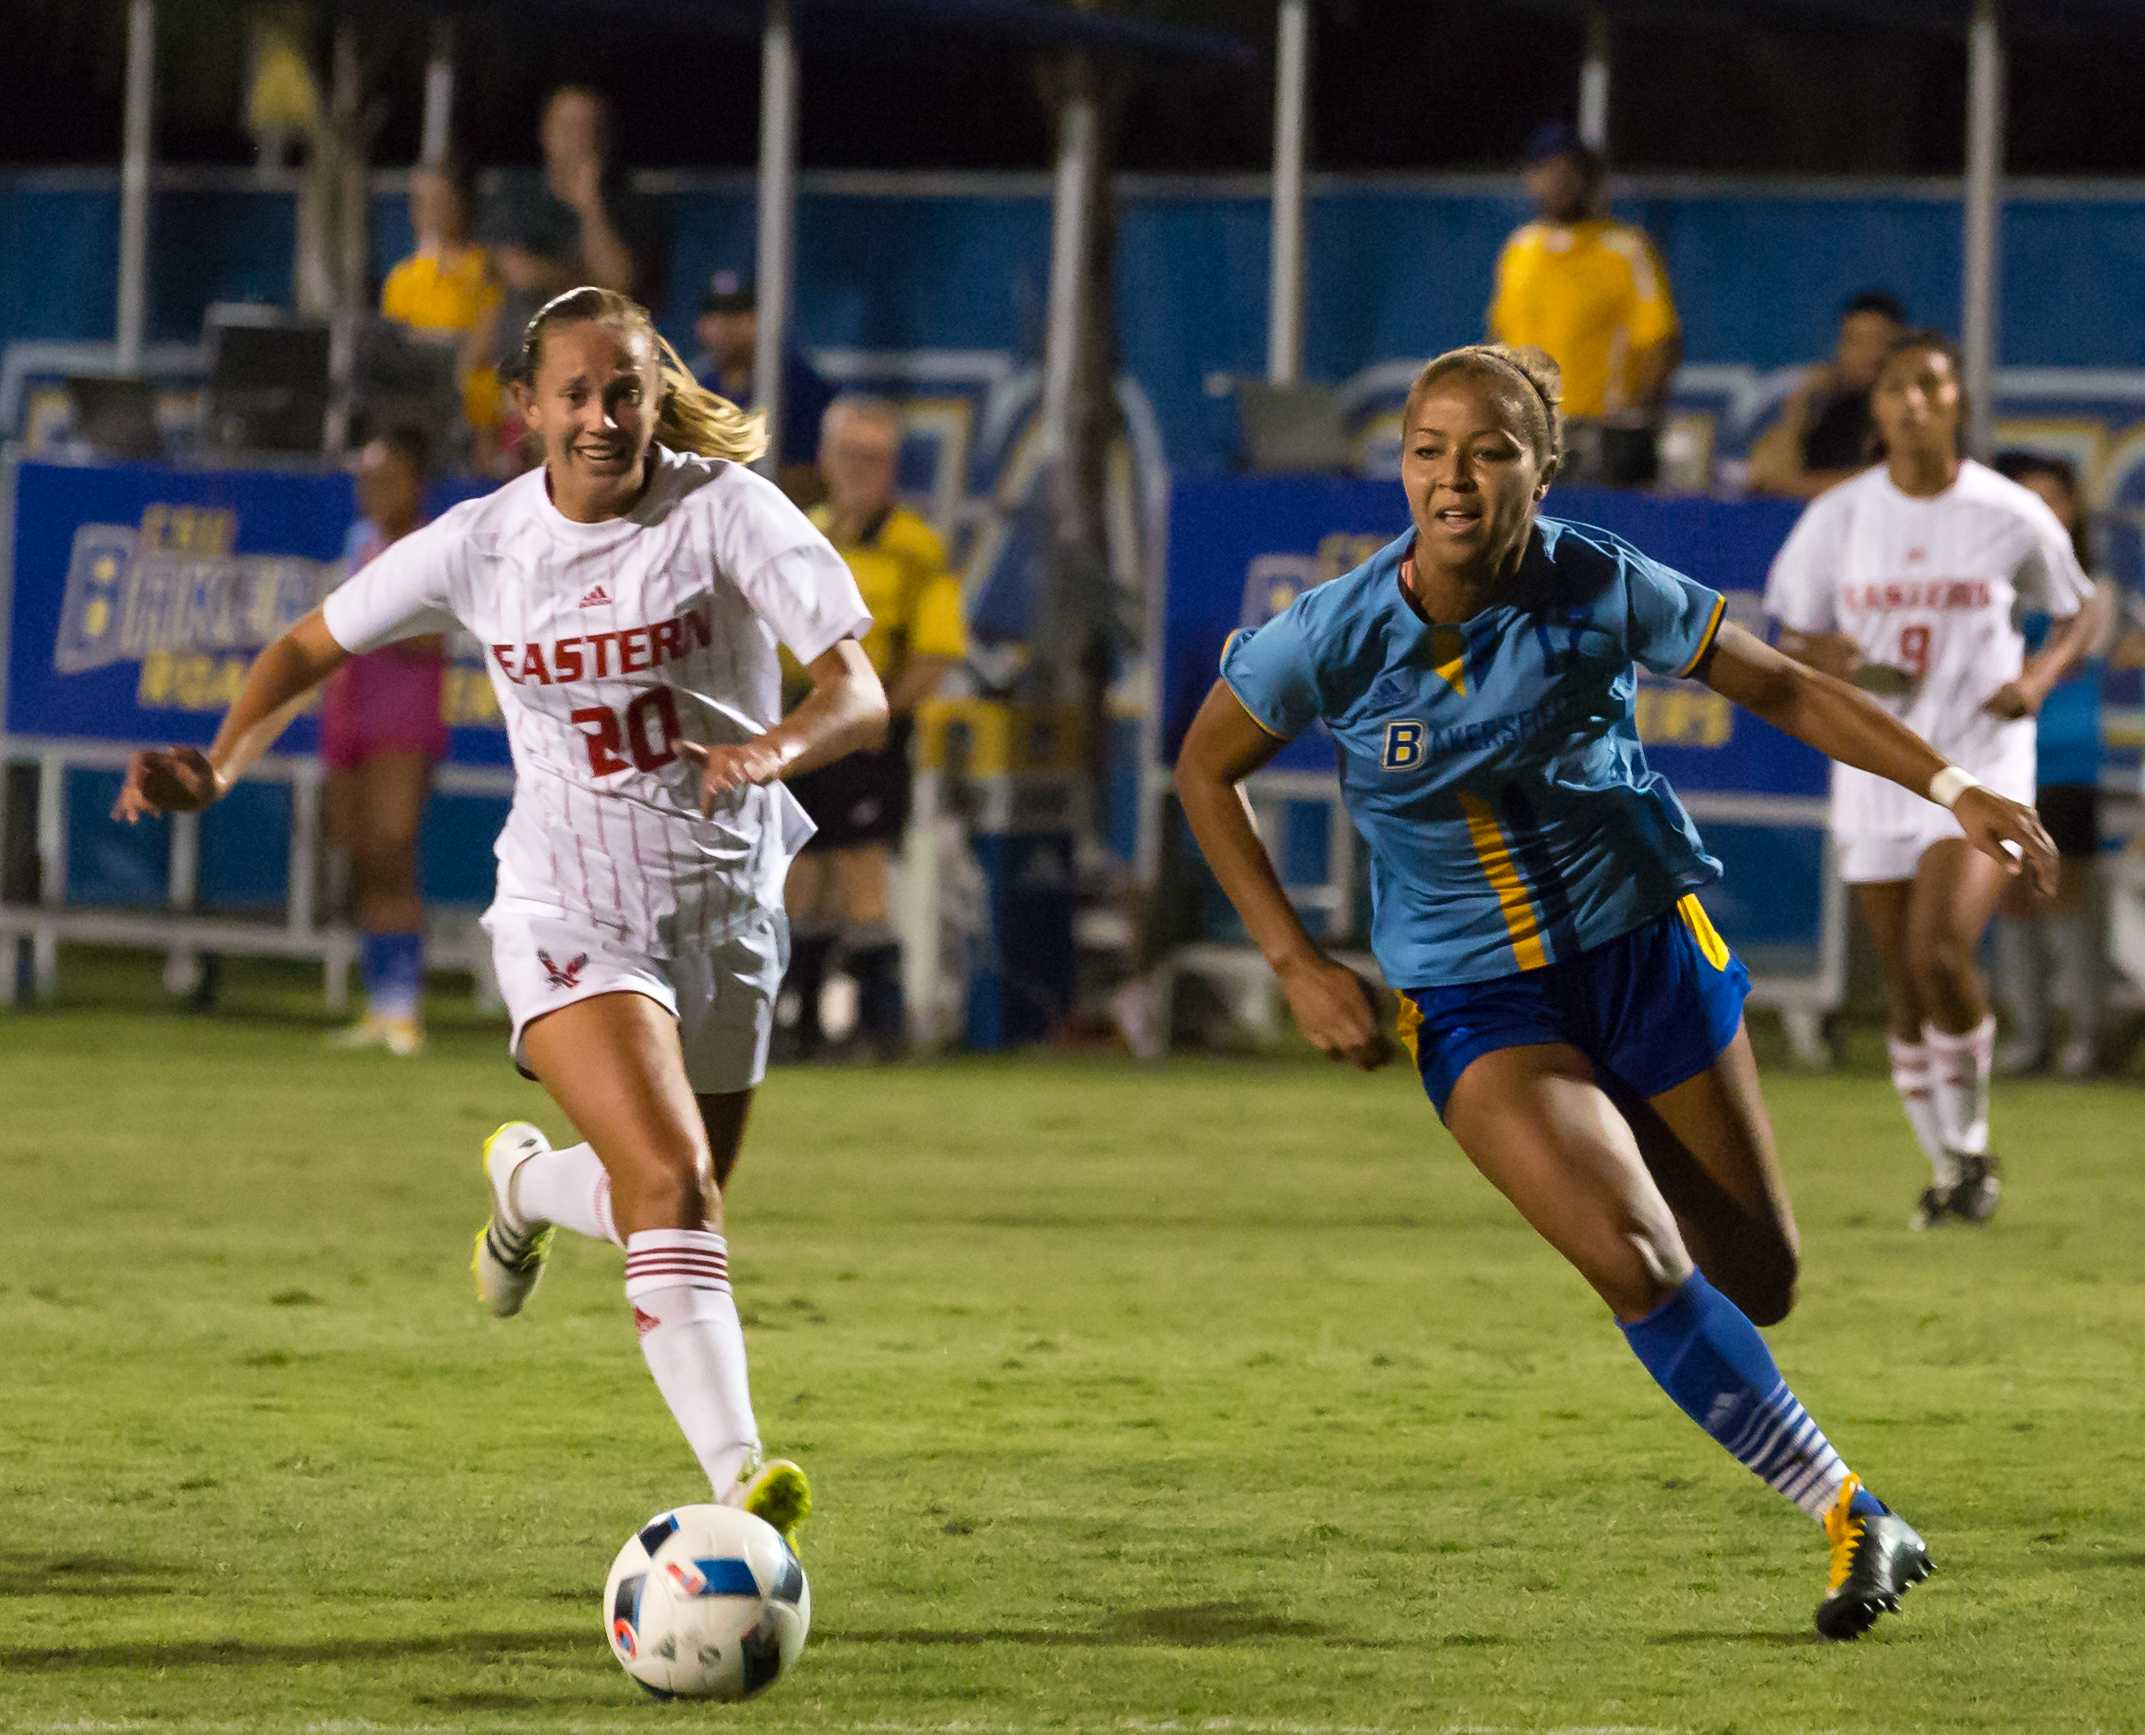 Roadrunners win in double overtime